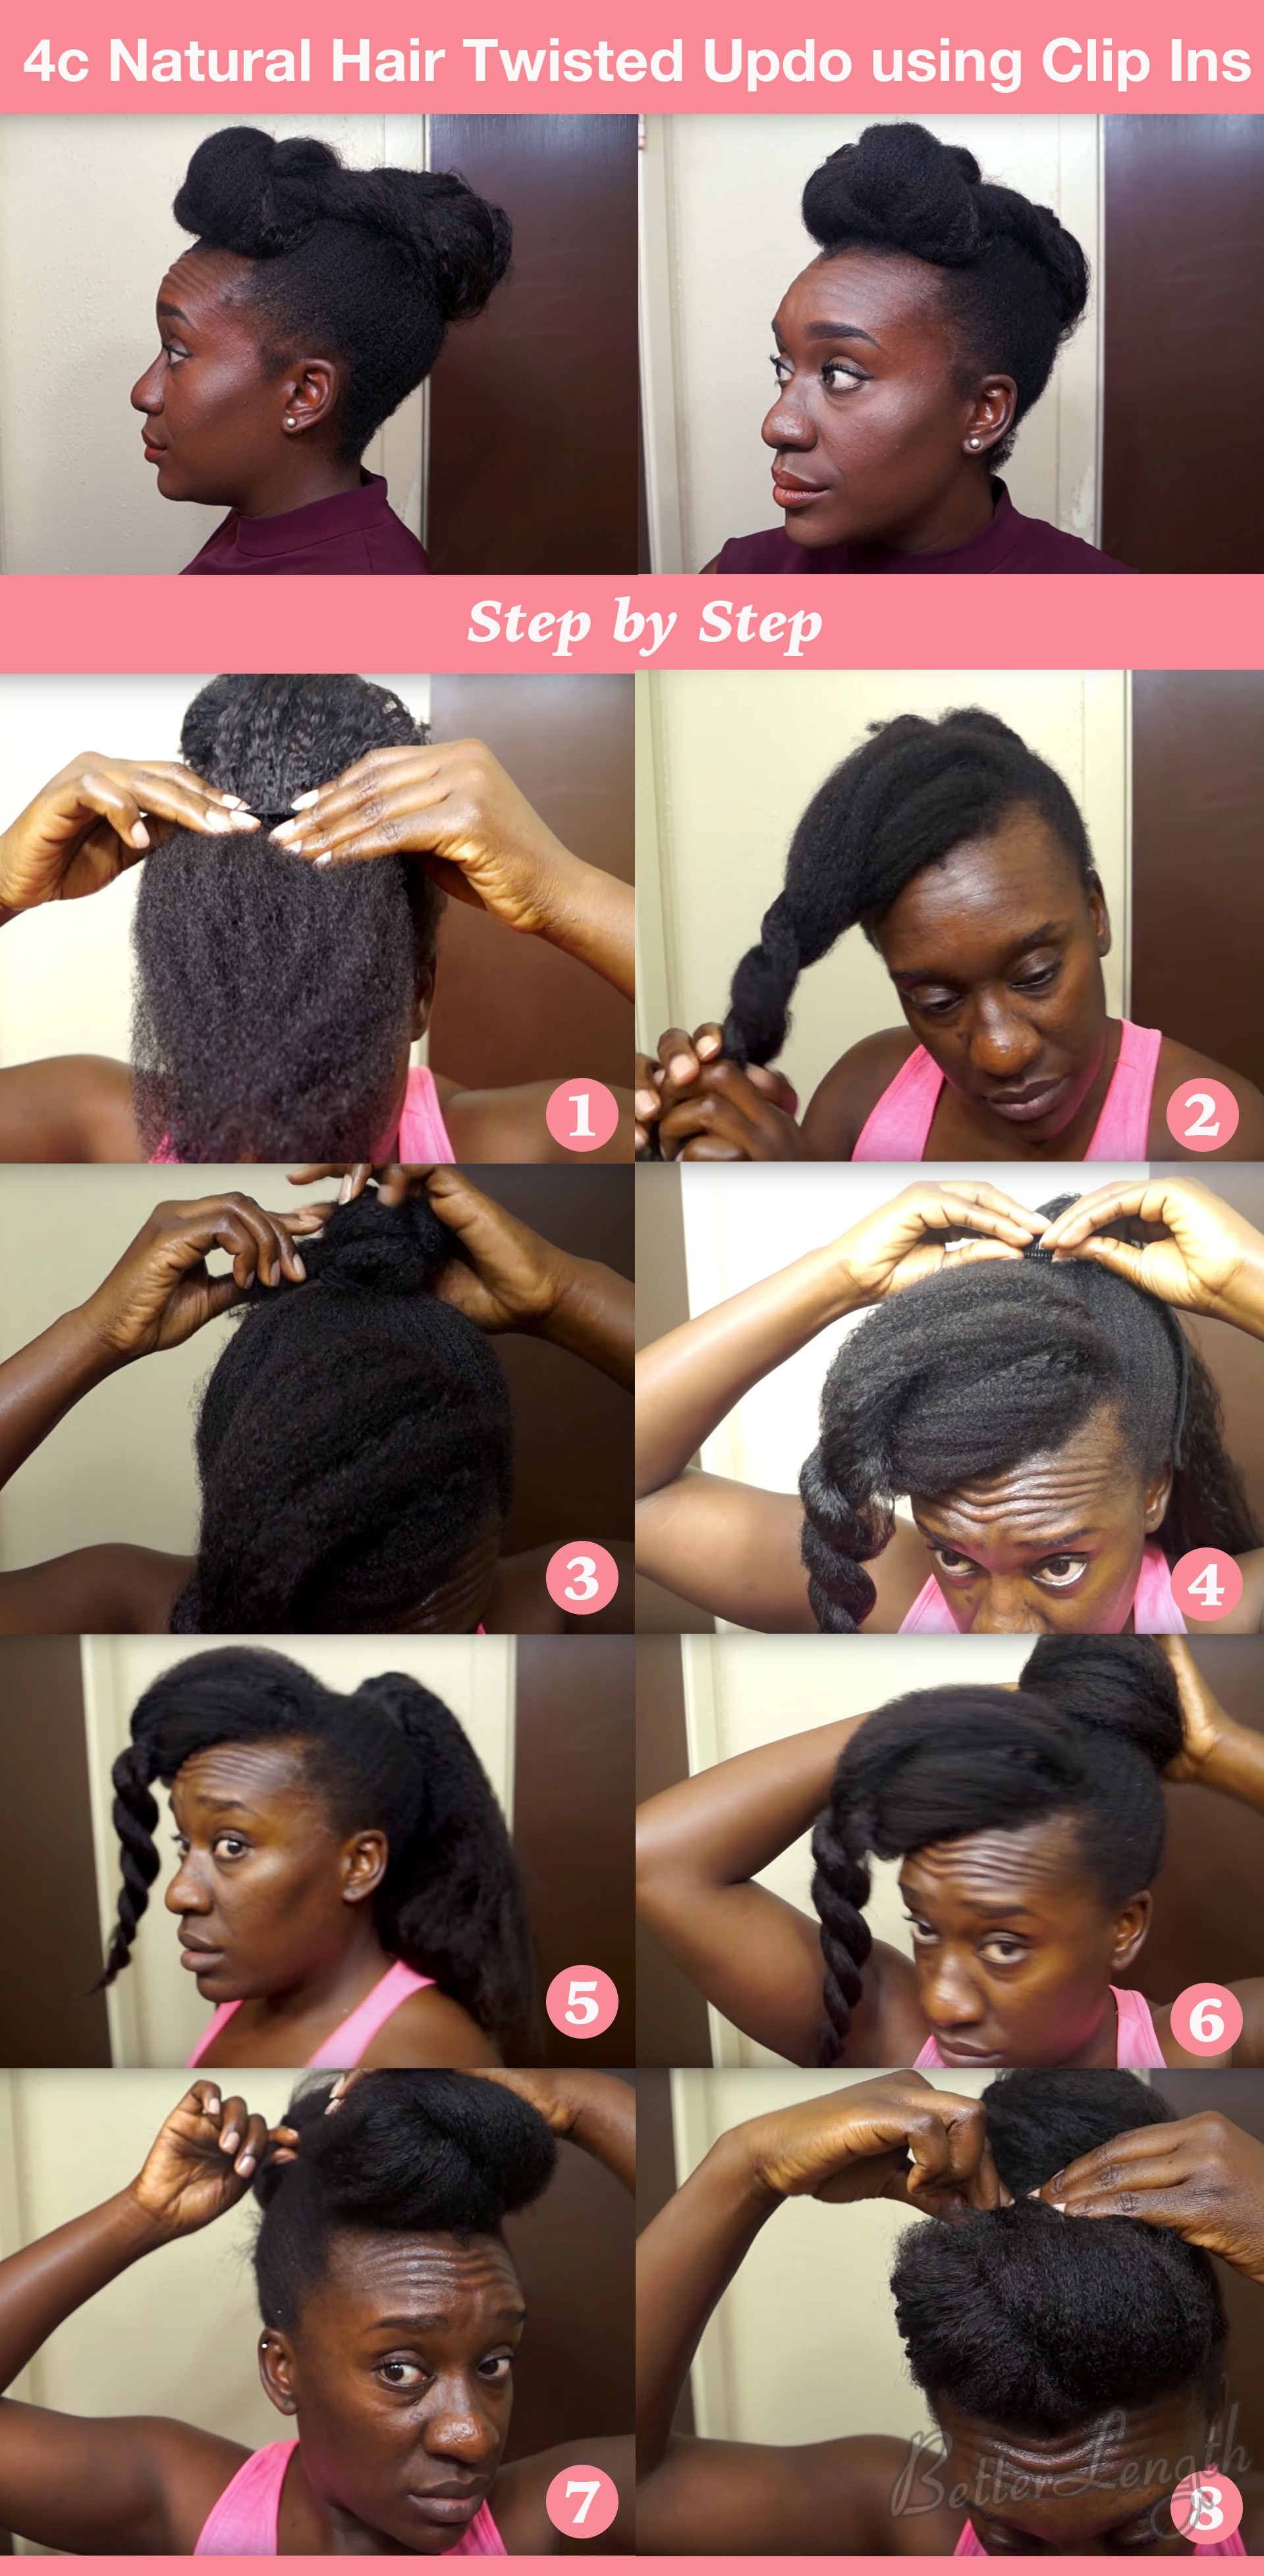 Natural Hair Styles Short Hair 4c Top 6 Quick Easy Natural Hair Updos Betterlength Hair